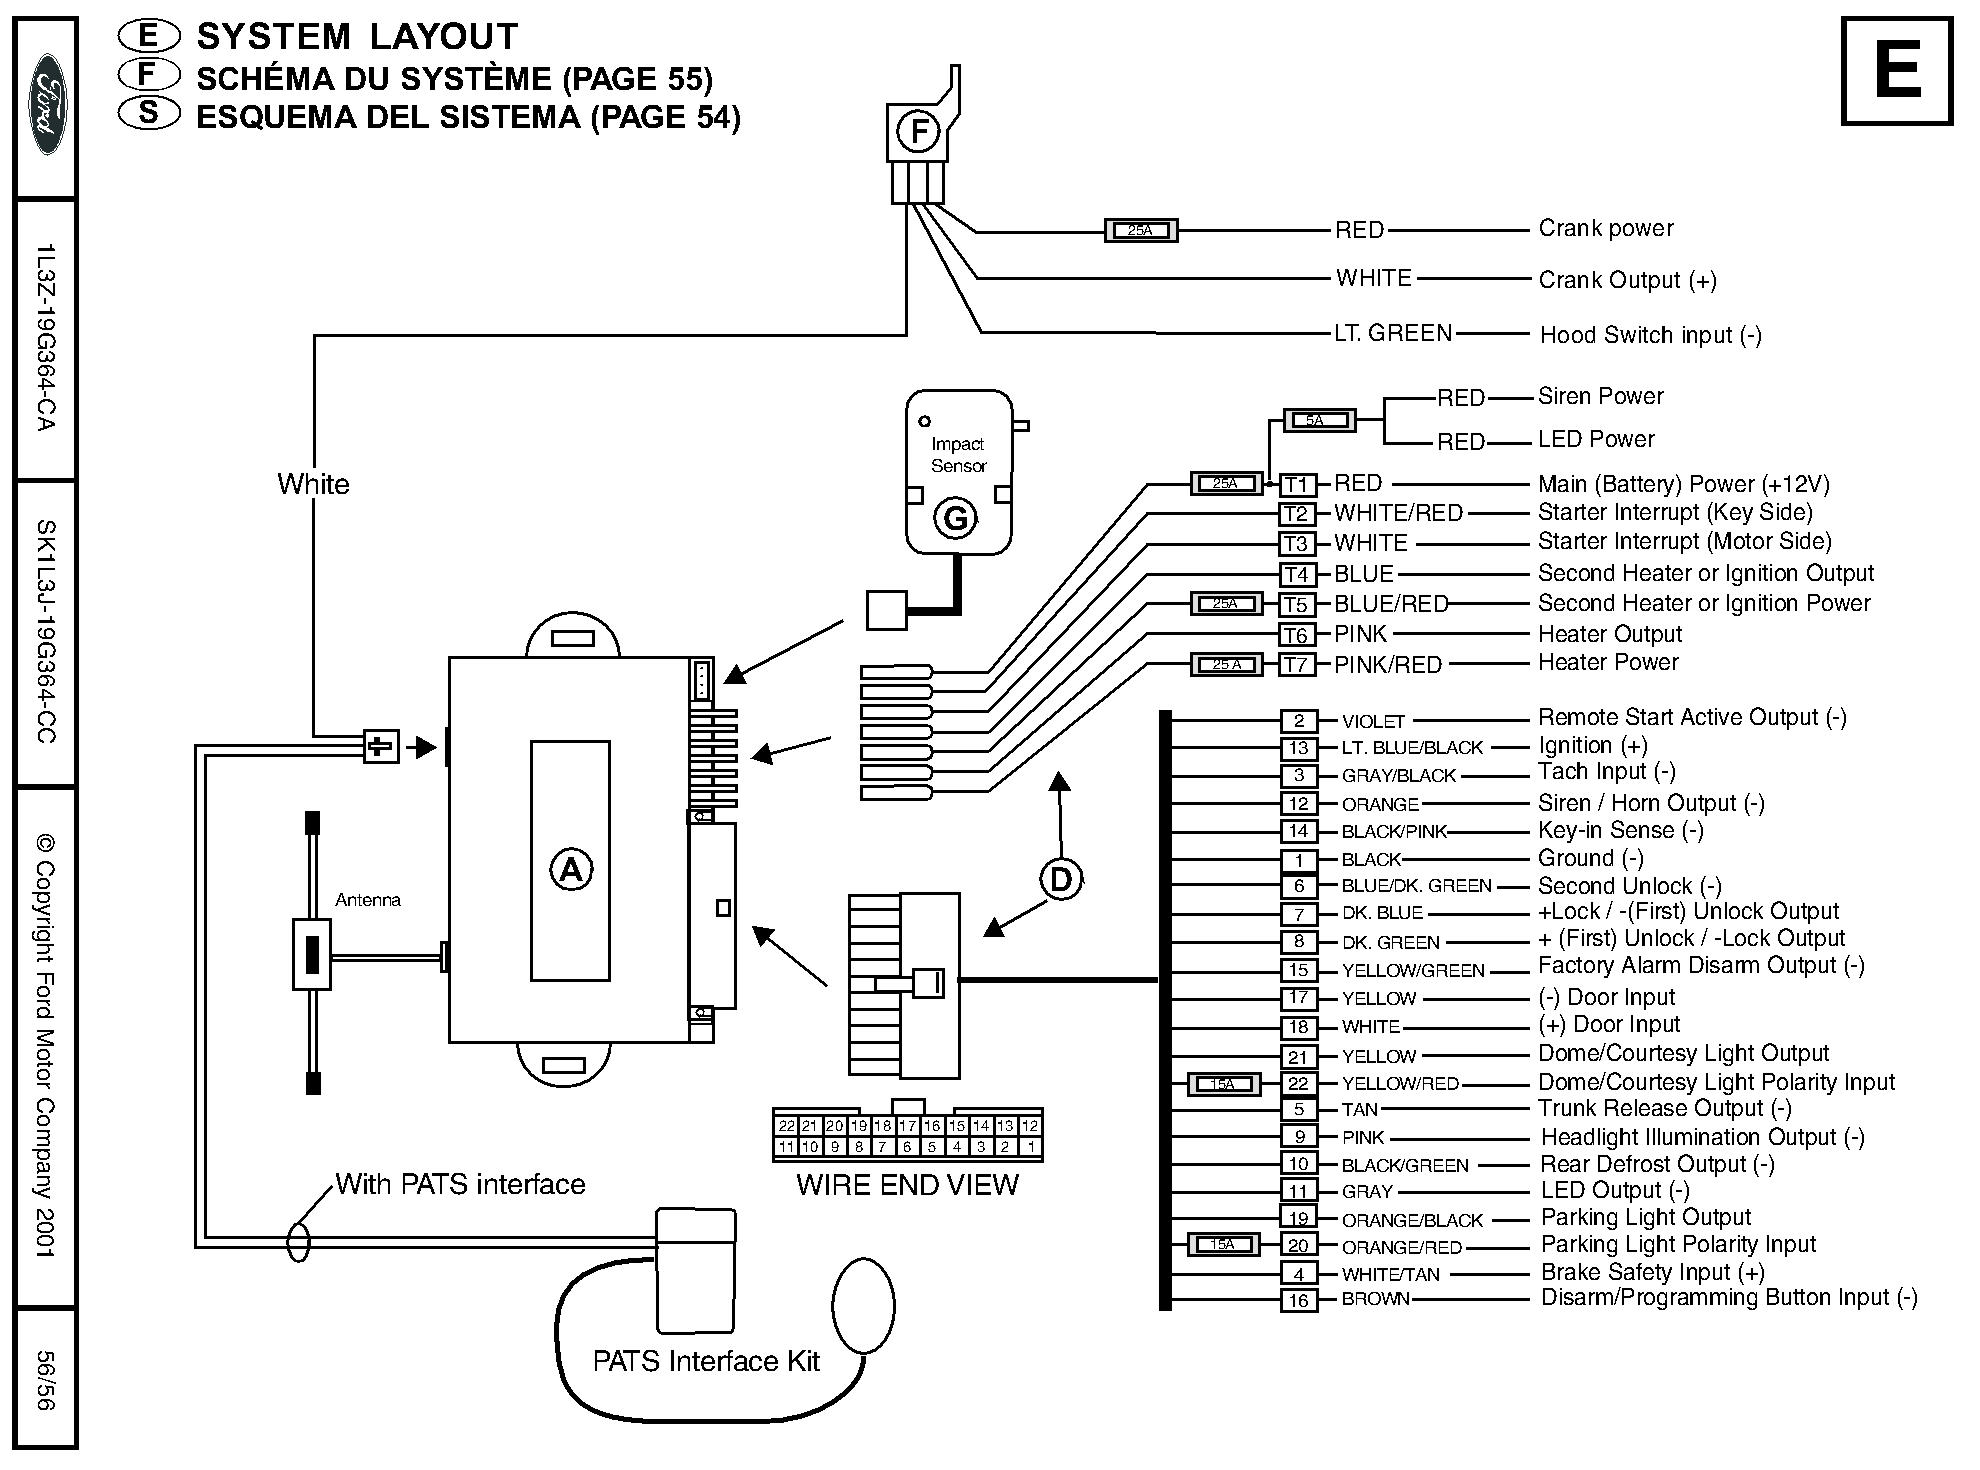 car starter wiring diagram weed wacker fuel line viper remote start free engine